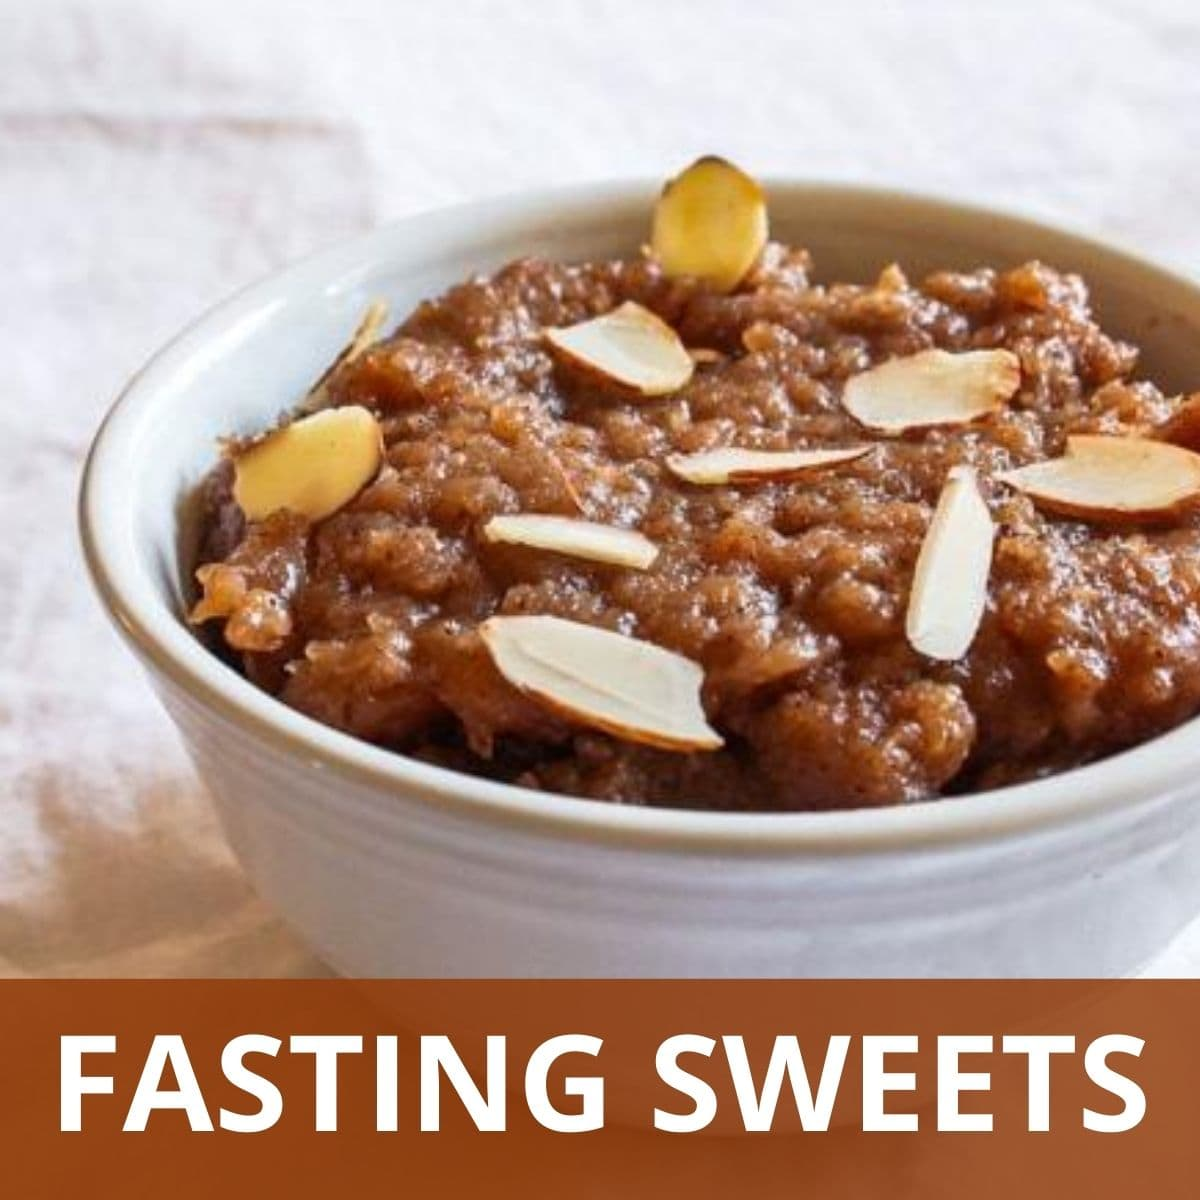 Fasting Sweets